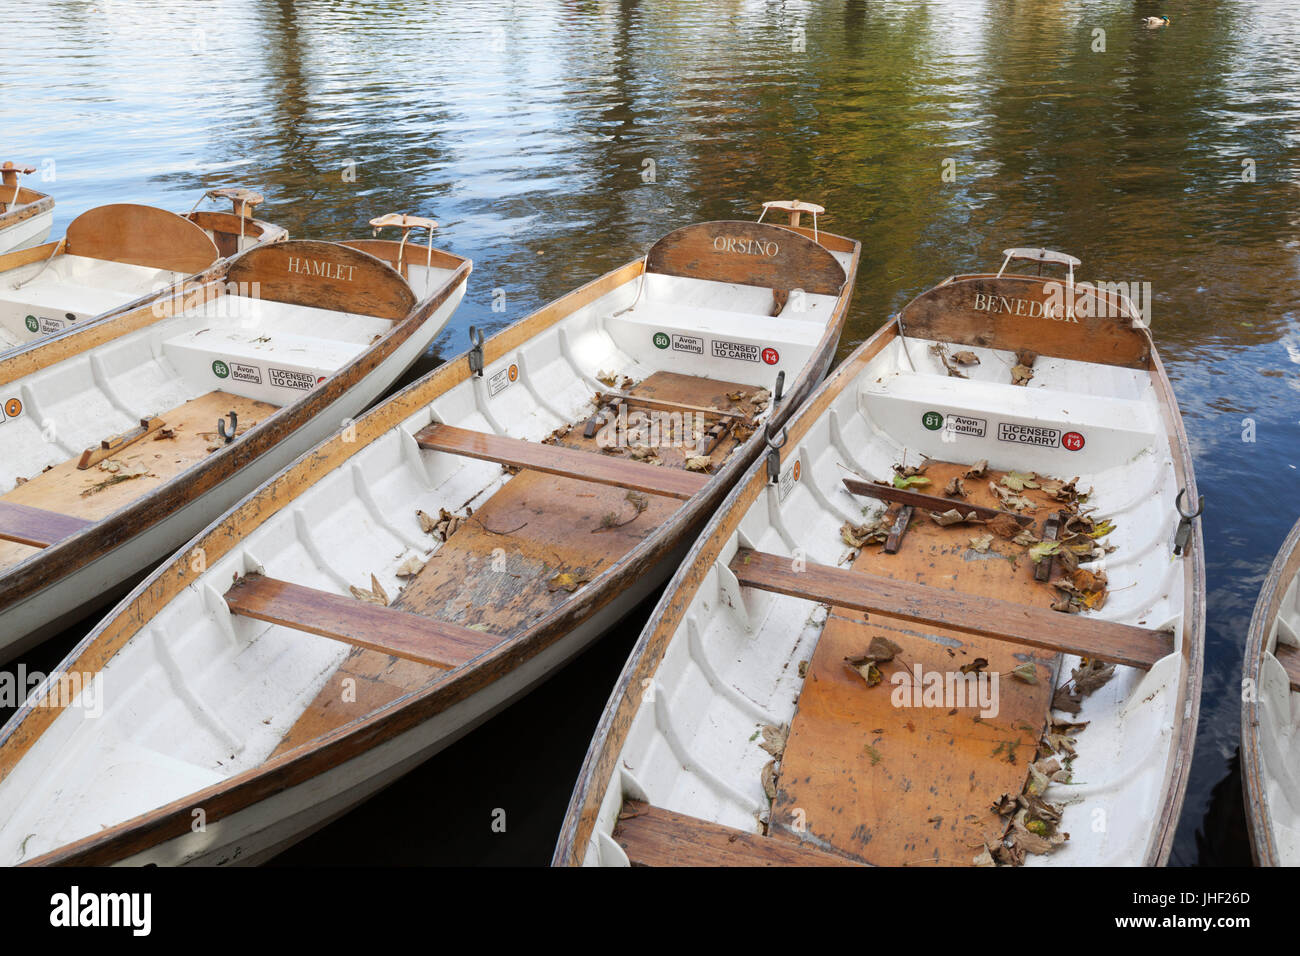 Rowing boats on River Avon with names from Shakespeare's characters, Stratford-upon-Avon, Warwickshire, England, - Stock Image